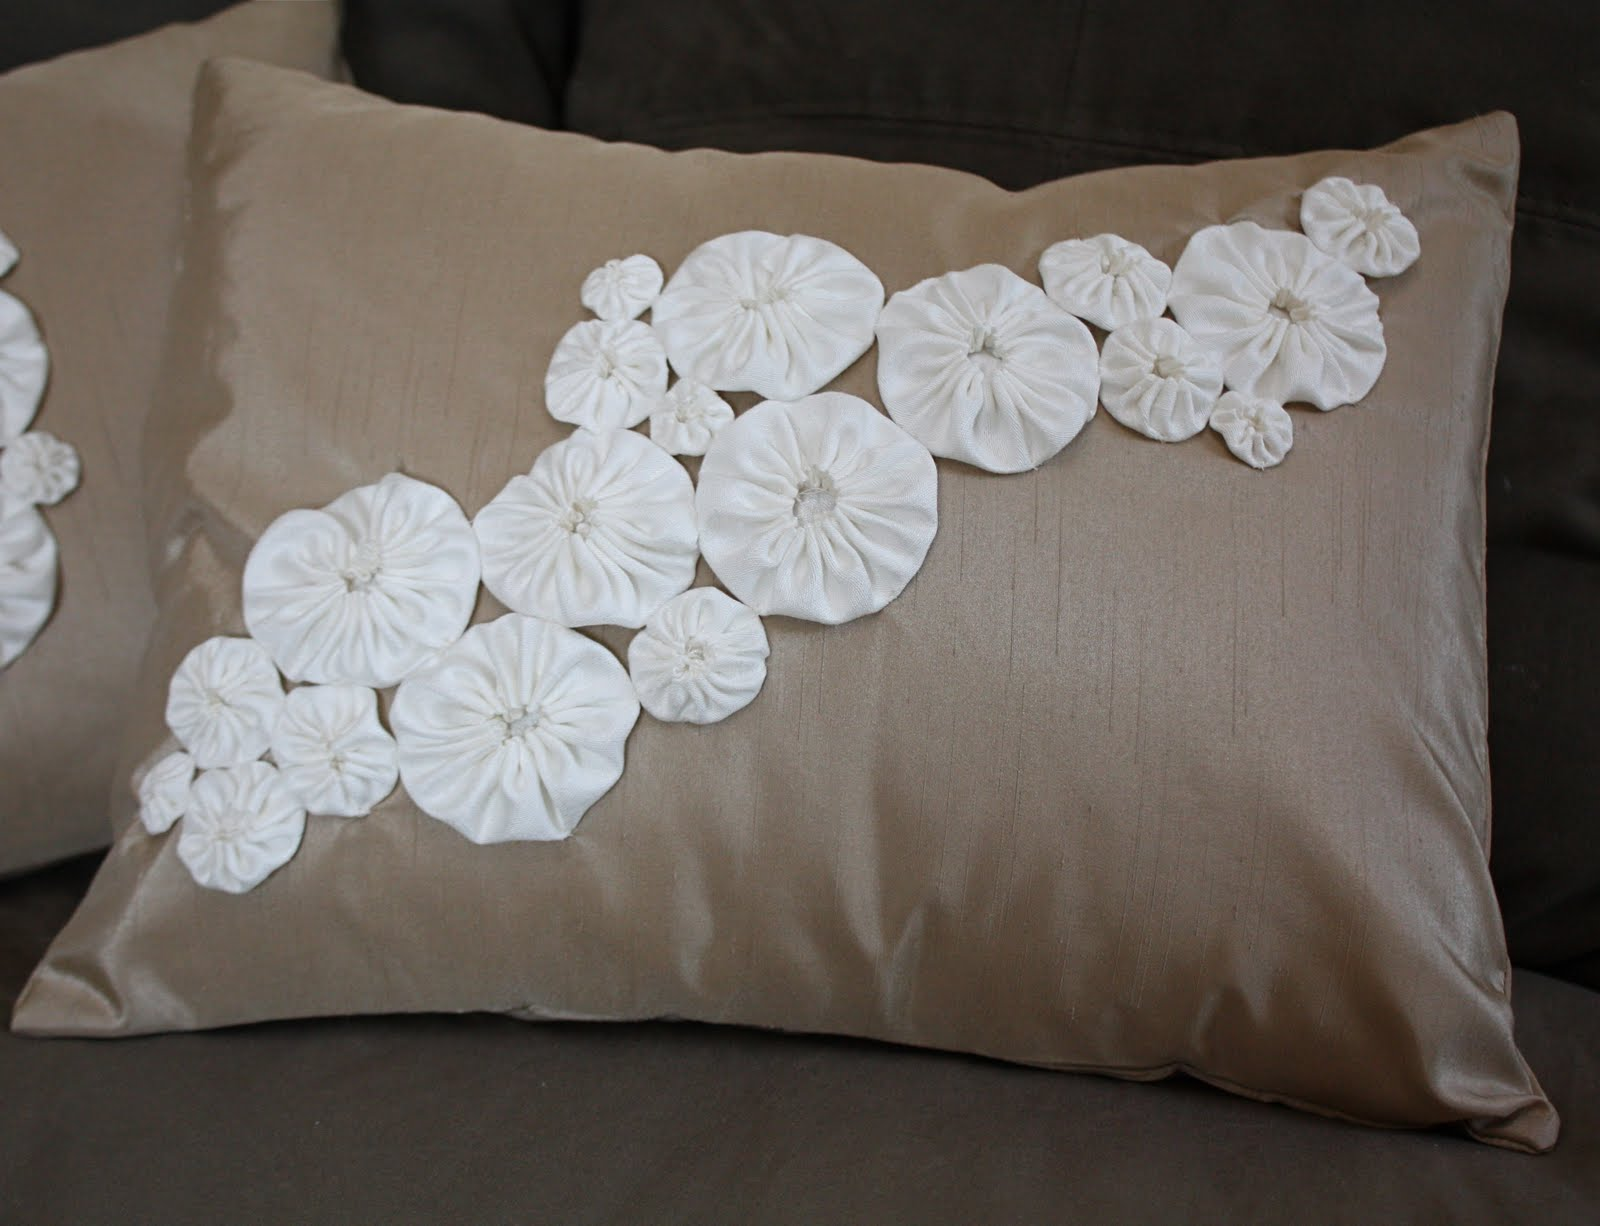 How To Make Cute Pillows Out Of Fabric : At Second Street: yo-yo pillows- AccuQuilt tutorial